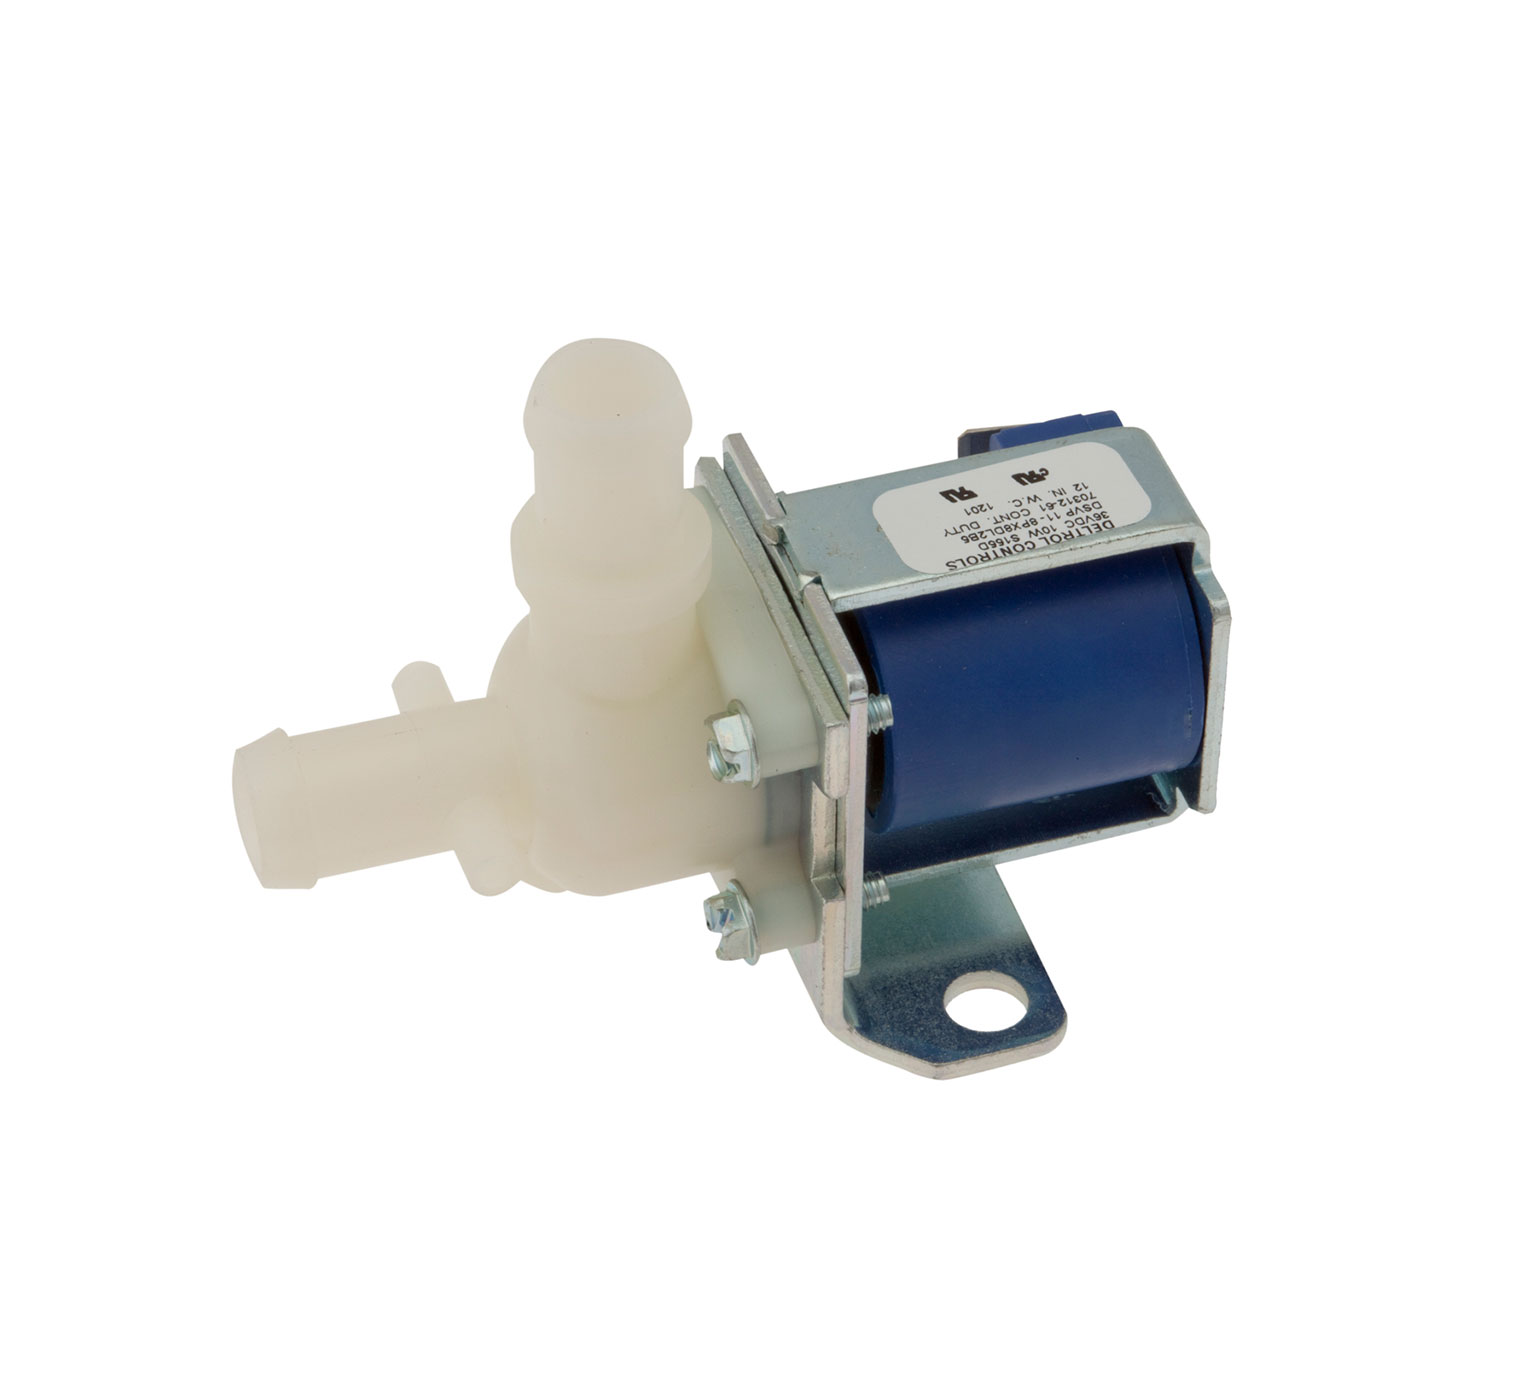 Solution Valve - 36 Volt Fixed Replaces Clarke 48703A